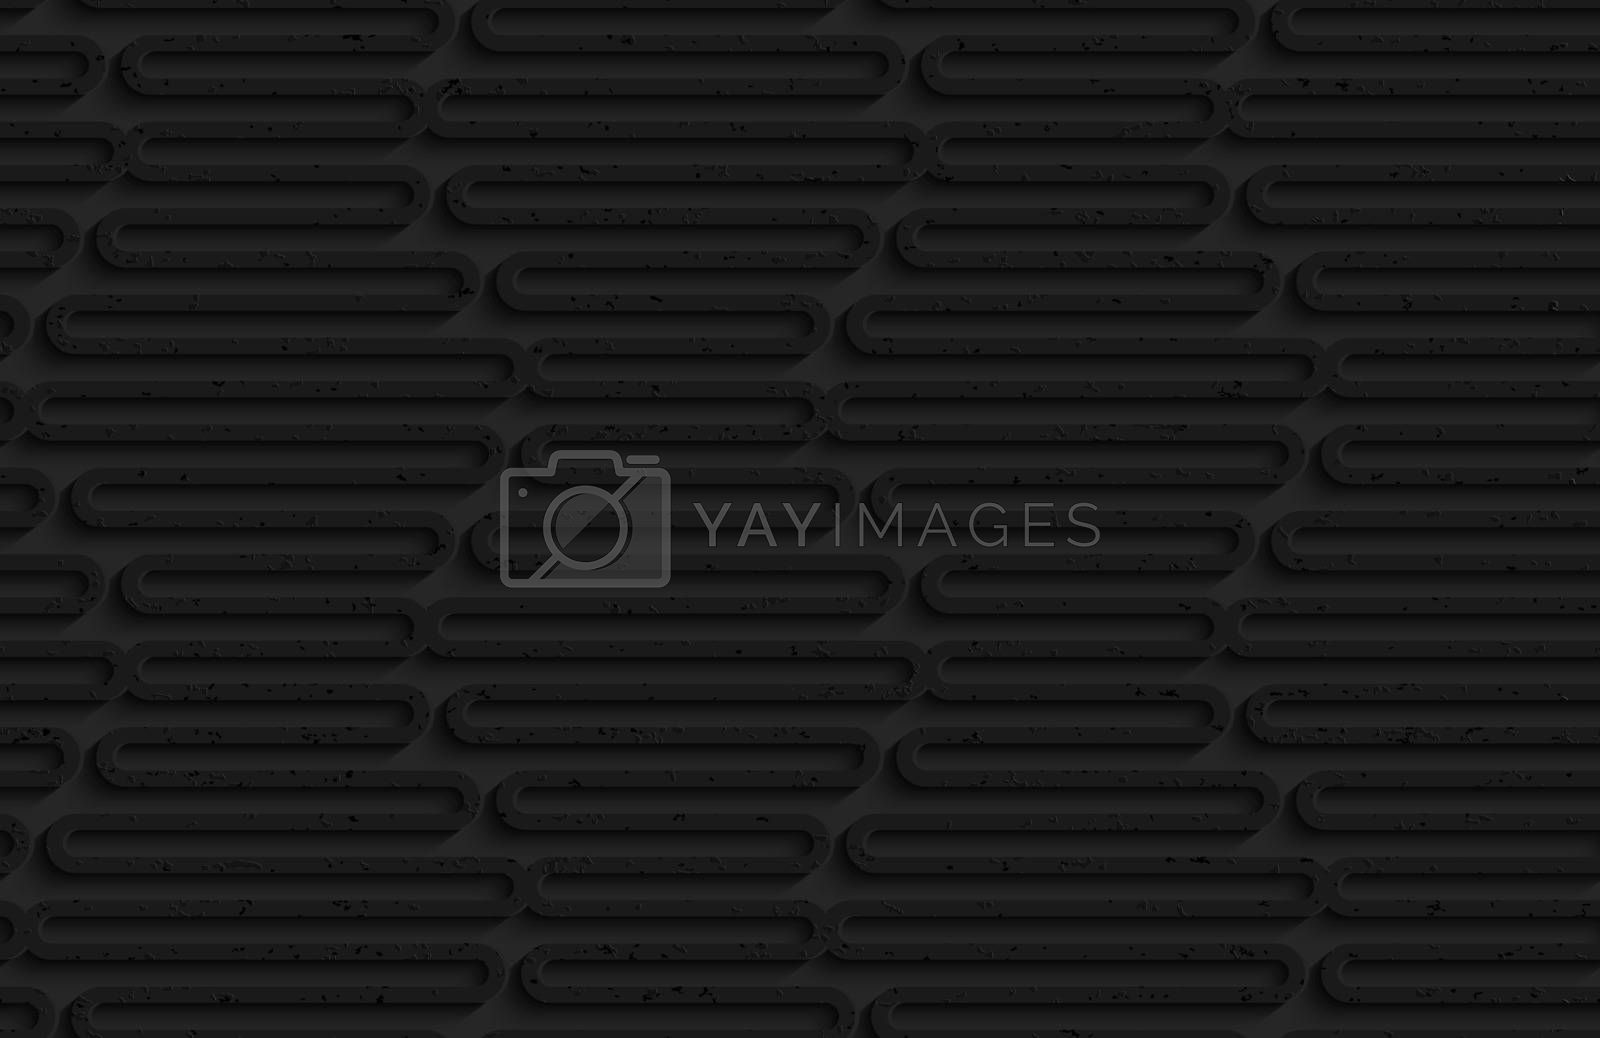 Seamless geometric background. Pattern with 3D texture and realistic shadow.Textured black plastic wavy hexagons.